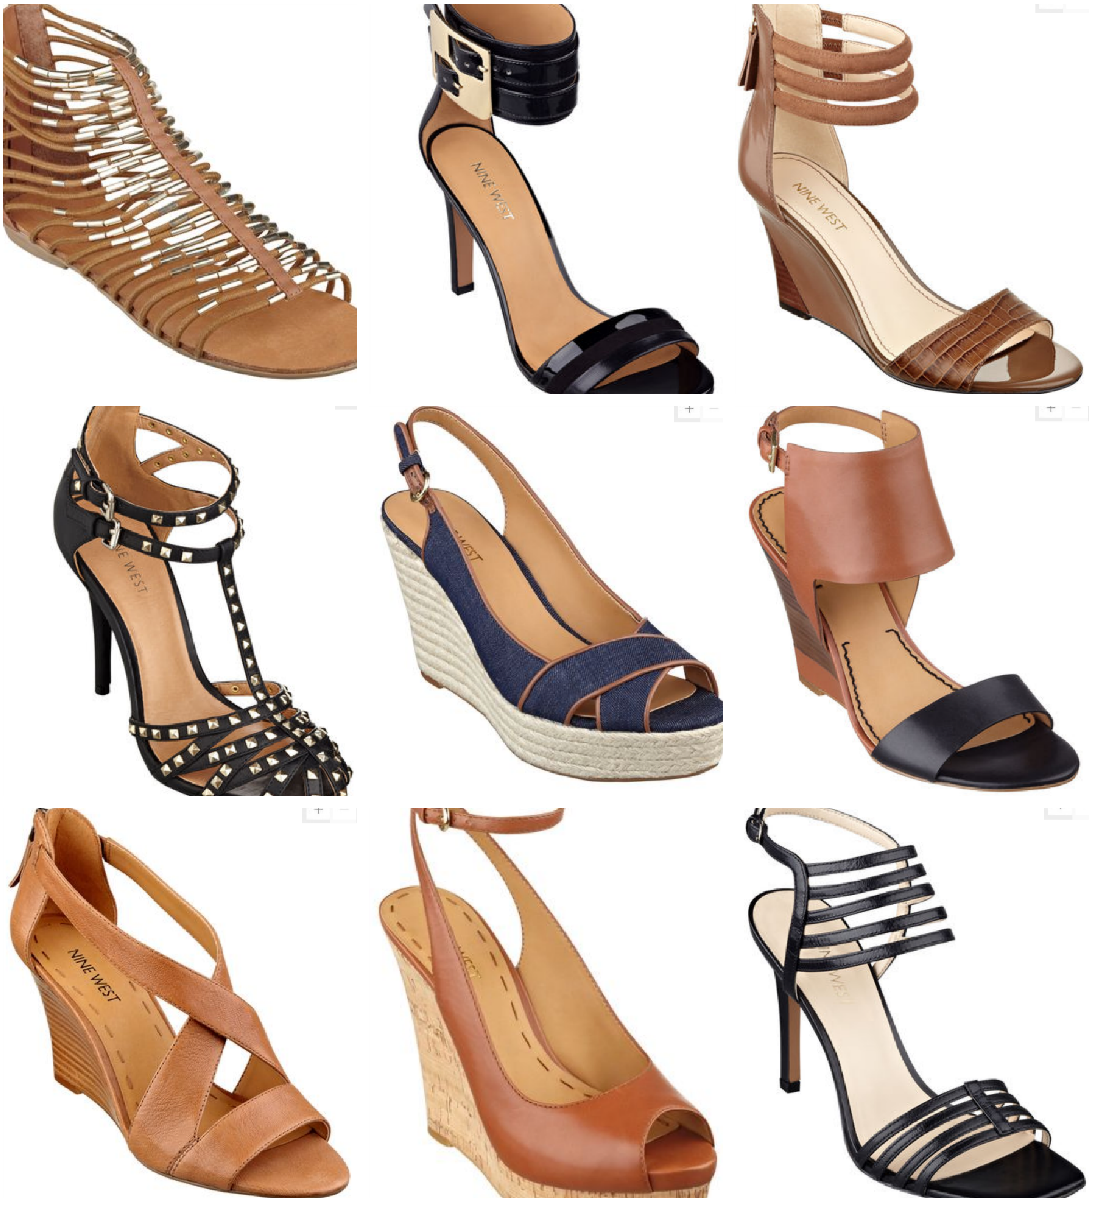 Nine West Shoe Sale 30% OFF TODAY ONLY! ~ My Loves